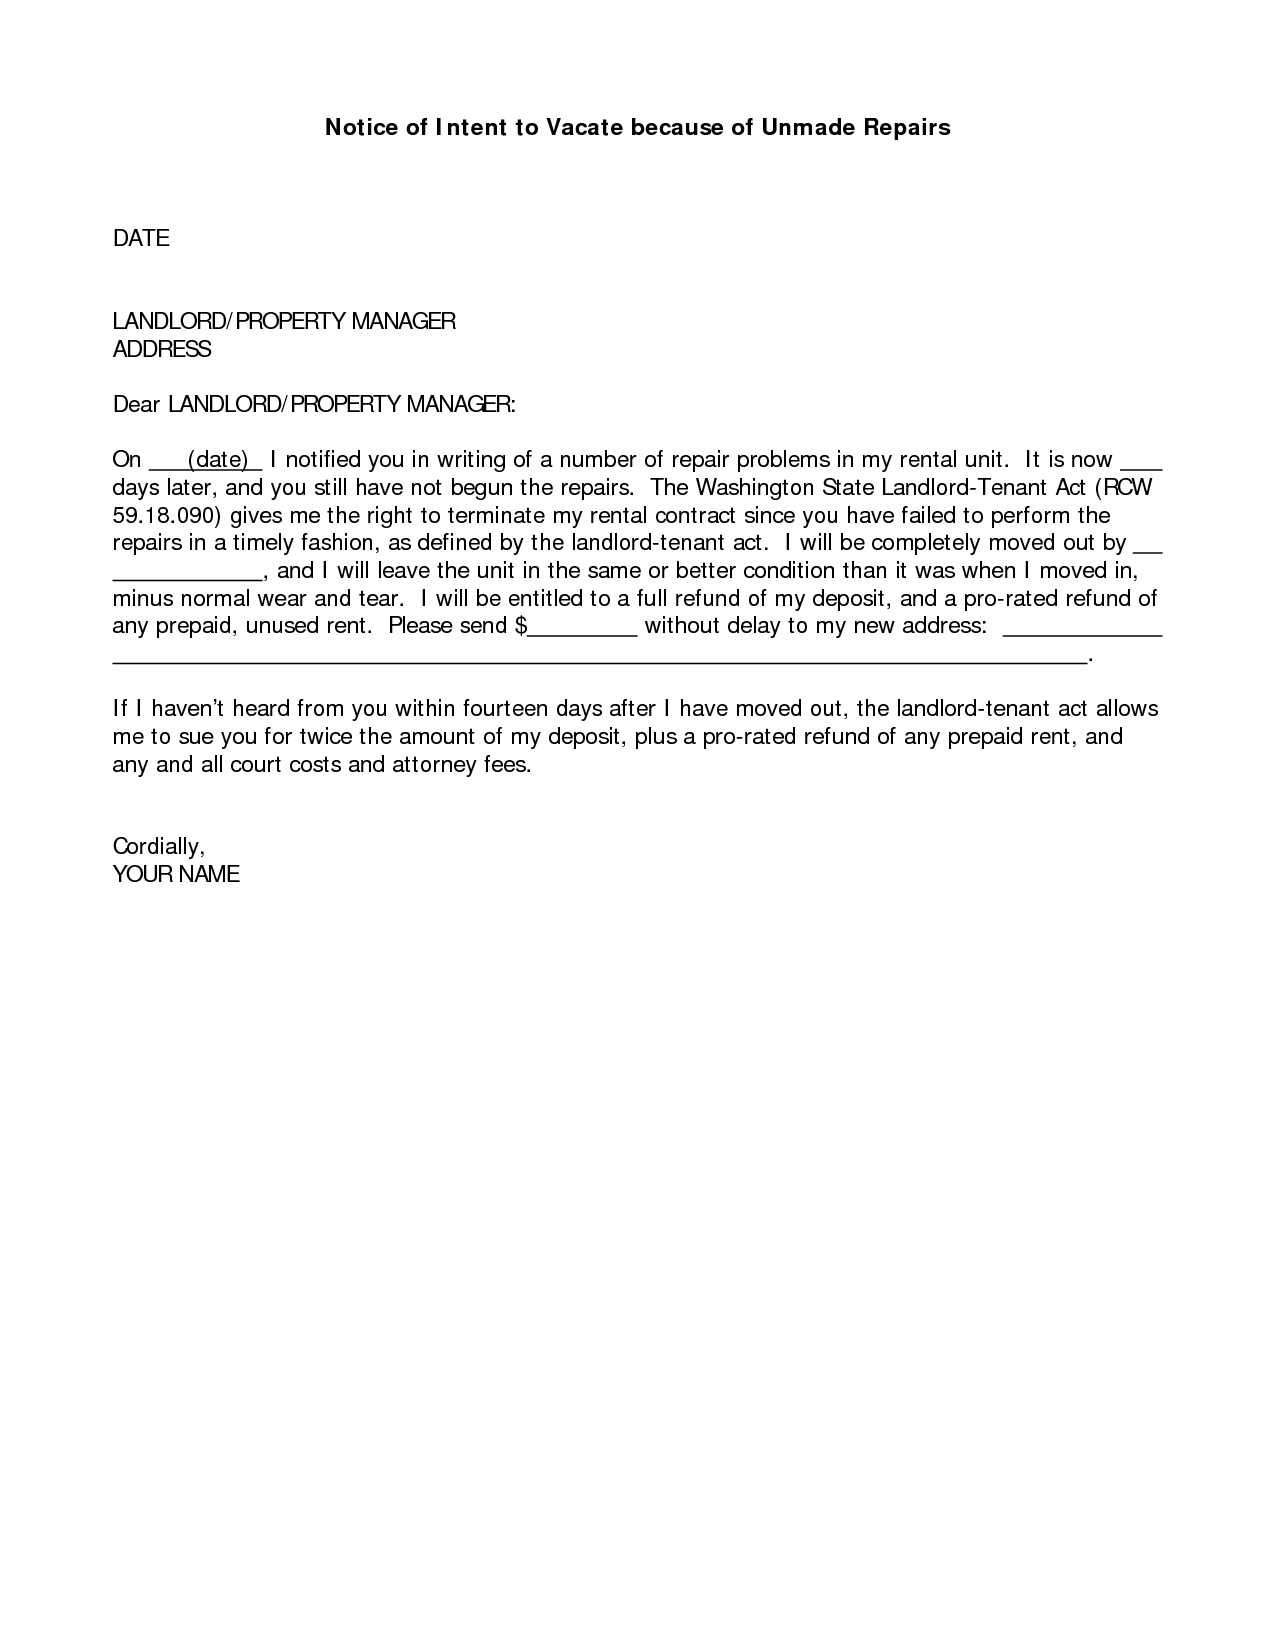 Notice to Vacate Apartment Letter Template - Sample Letter to Landlord with Notice Vacate Smart Letters Intent